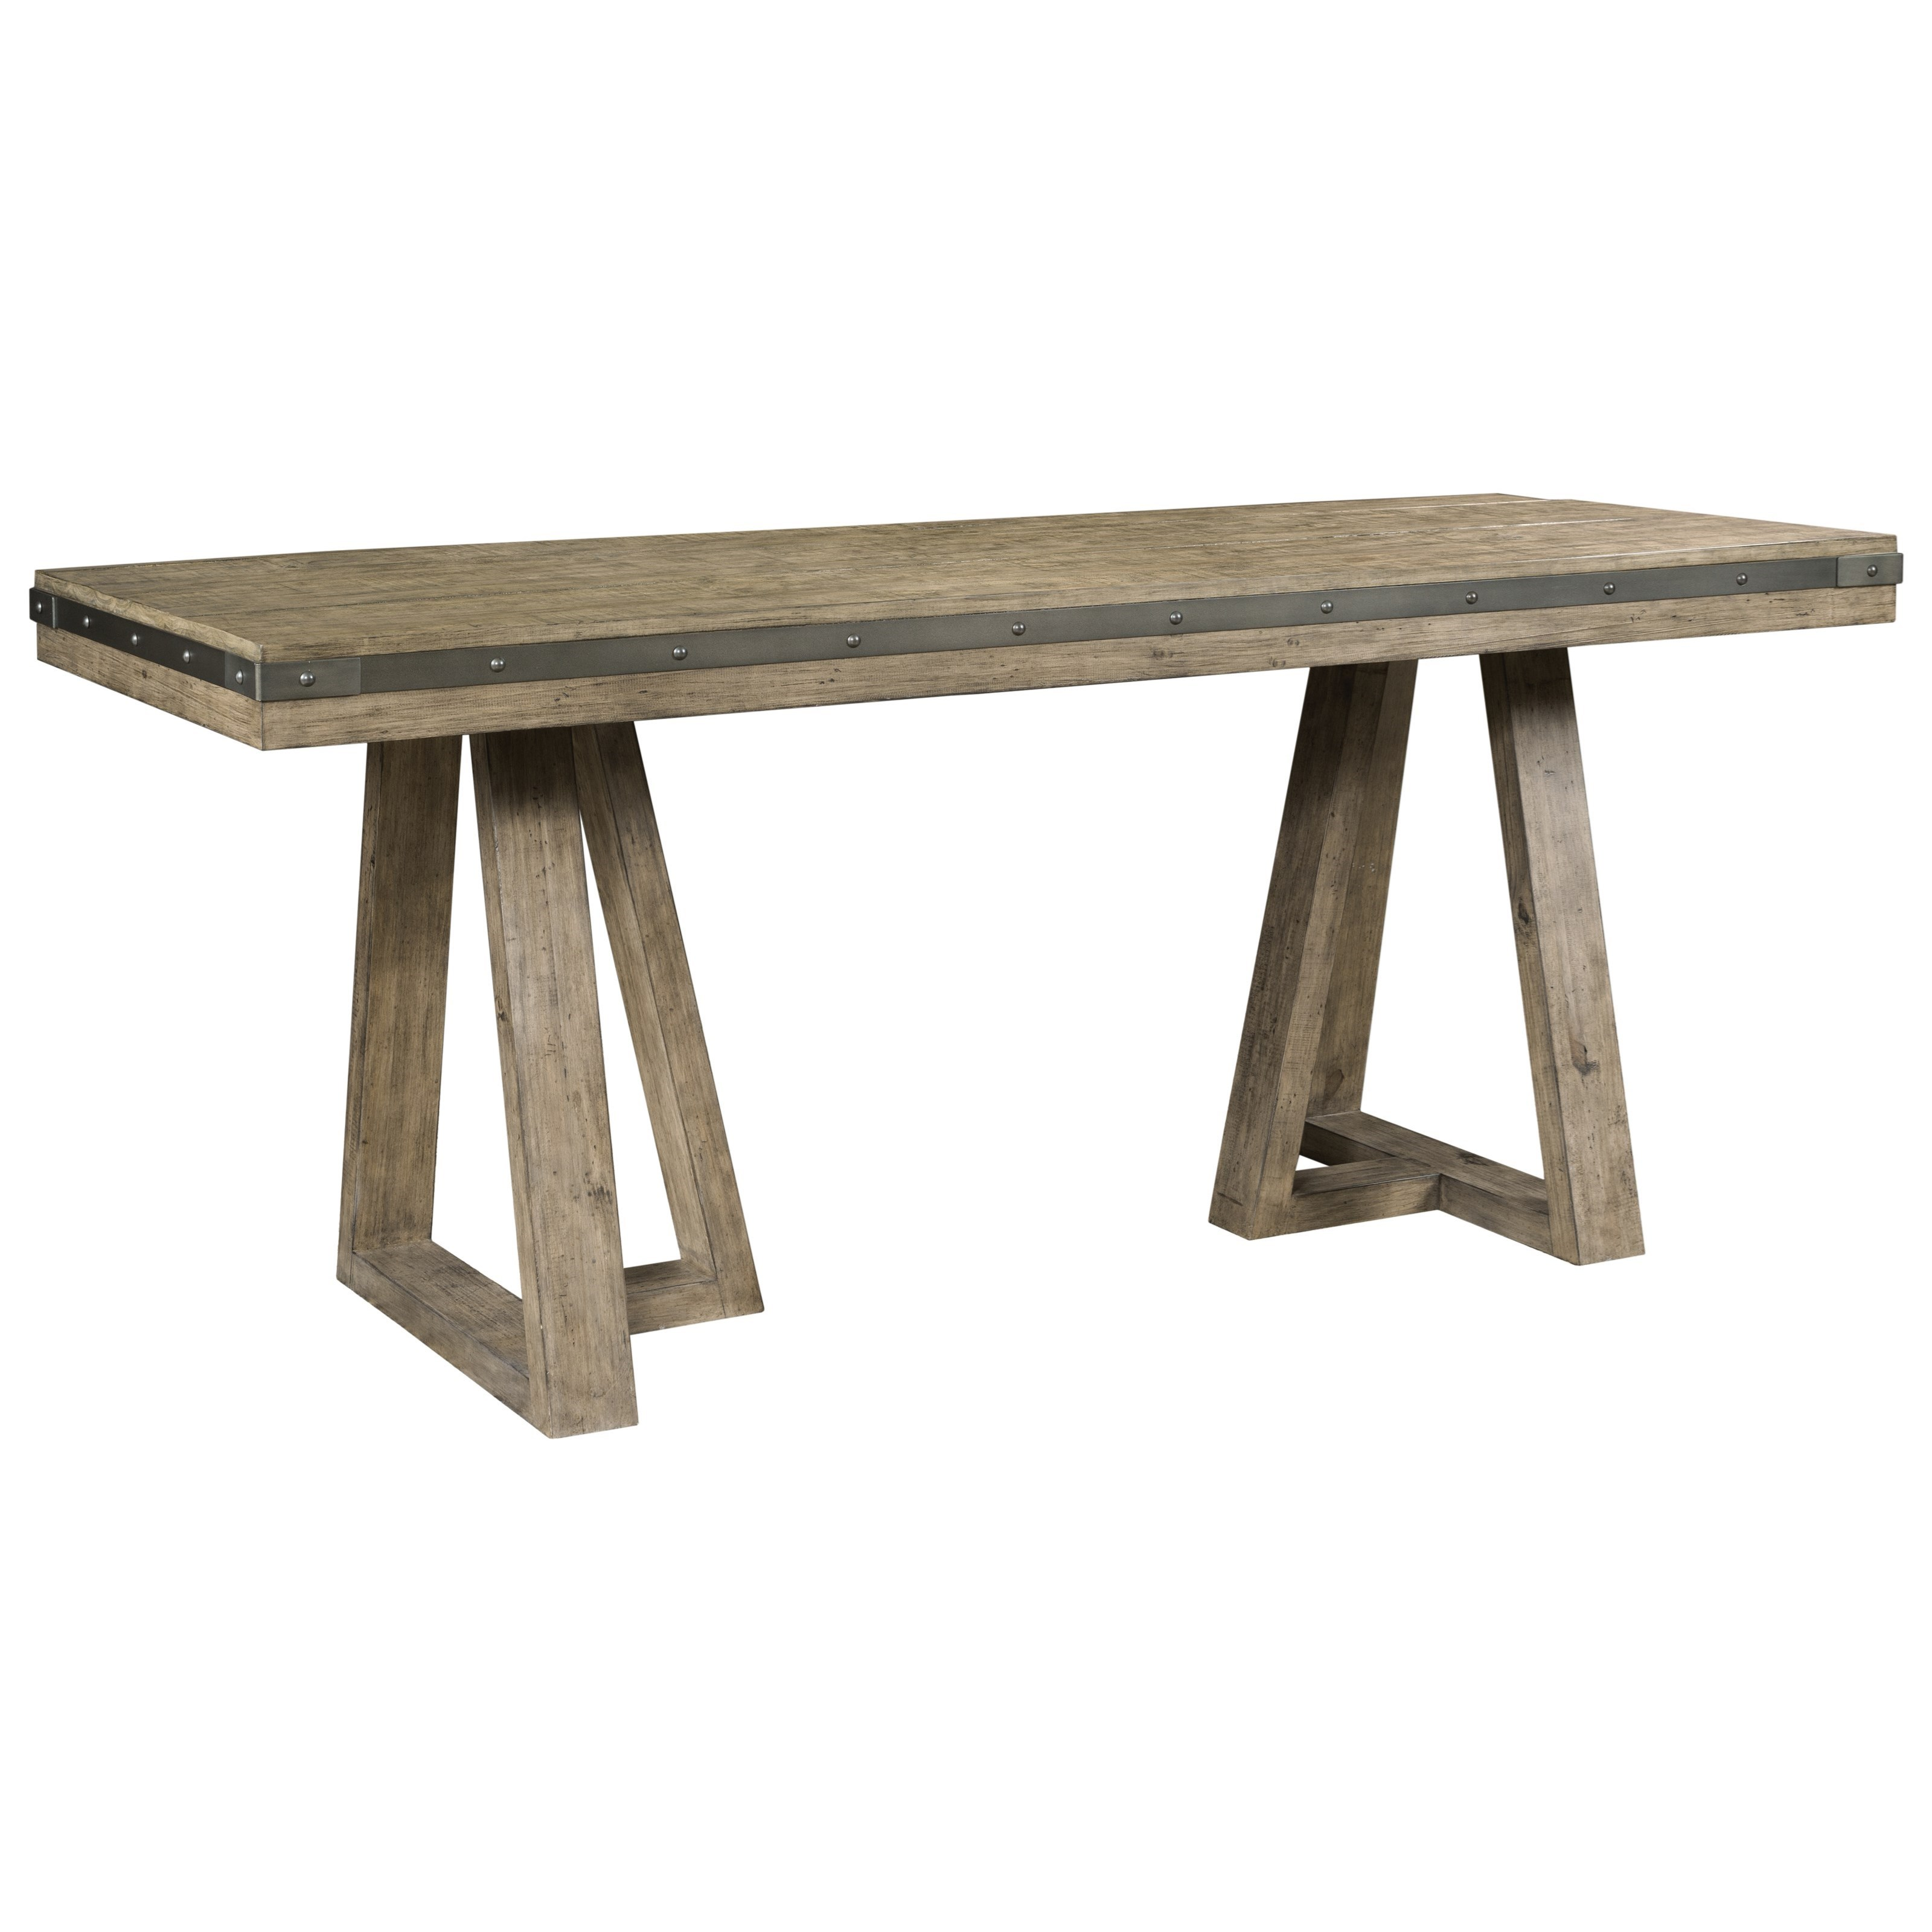 Plank Road Kimler Counter Height Dining Table by Kincaid Furniture at Northeast Factory Direct